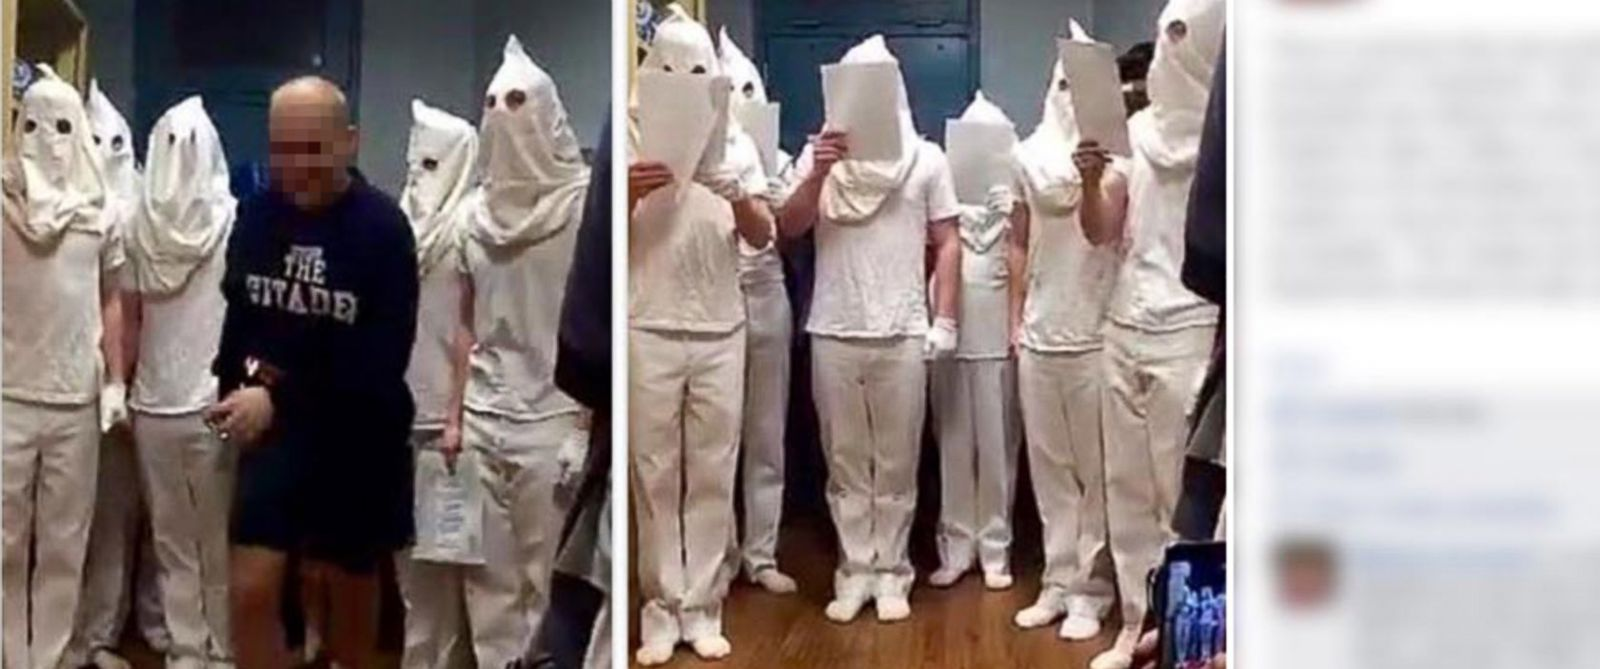 """PHOTO: An image posted to Facebook purports to show a group of cadets singing Christmas carols while wearing white hoods. A statement from The Citadel said that the posting is """"offensive and disturbing."""""""